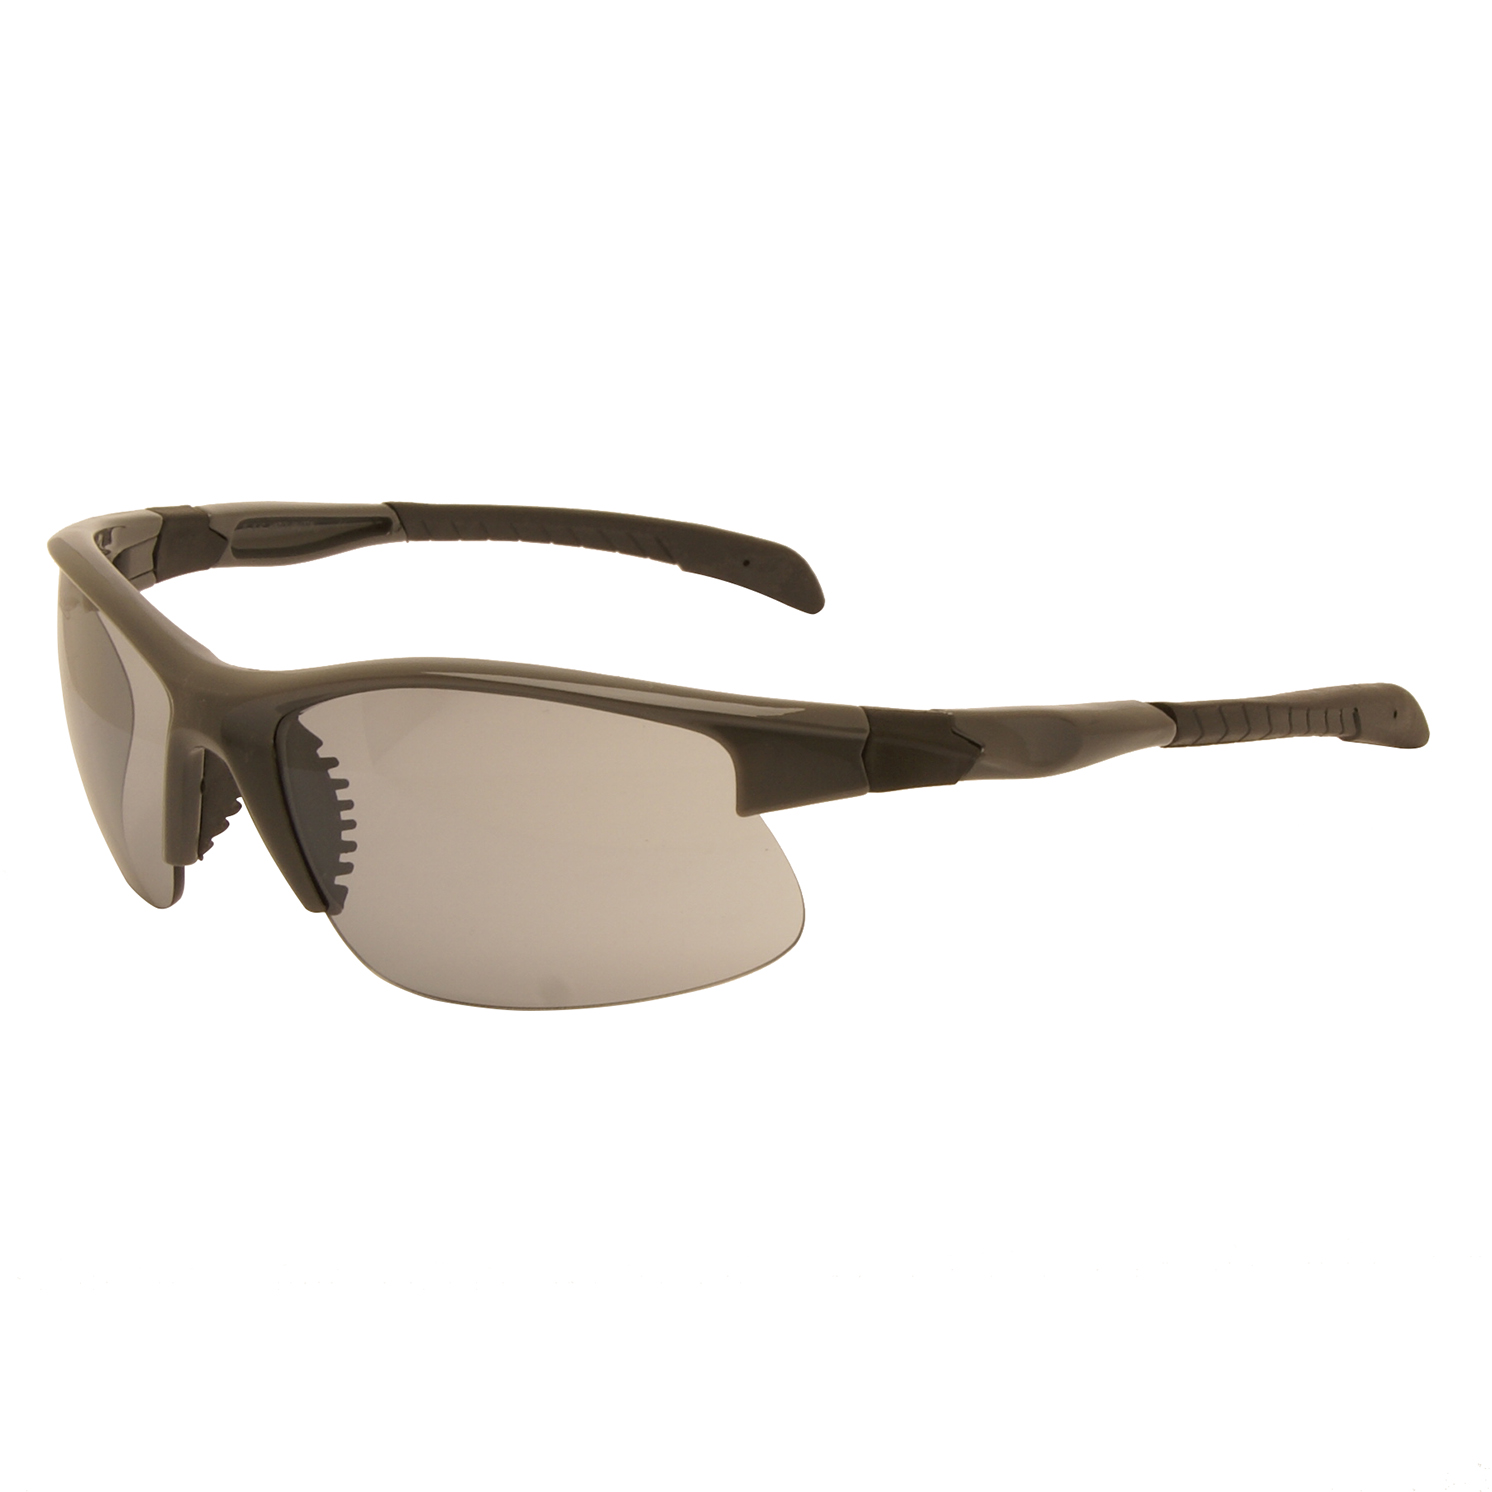 Harley Davidson – Shiny Grey & Black Wraparound Style Sunglasses with Case